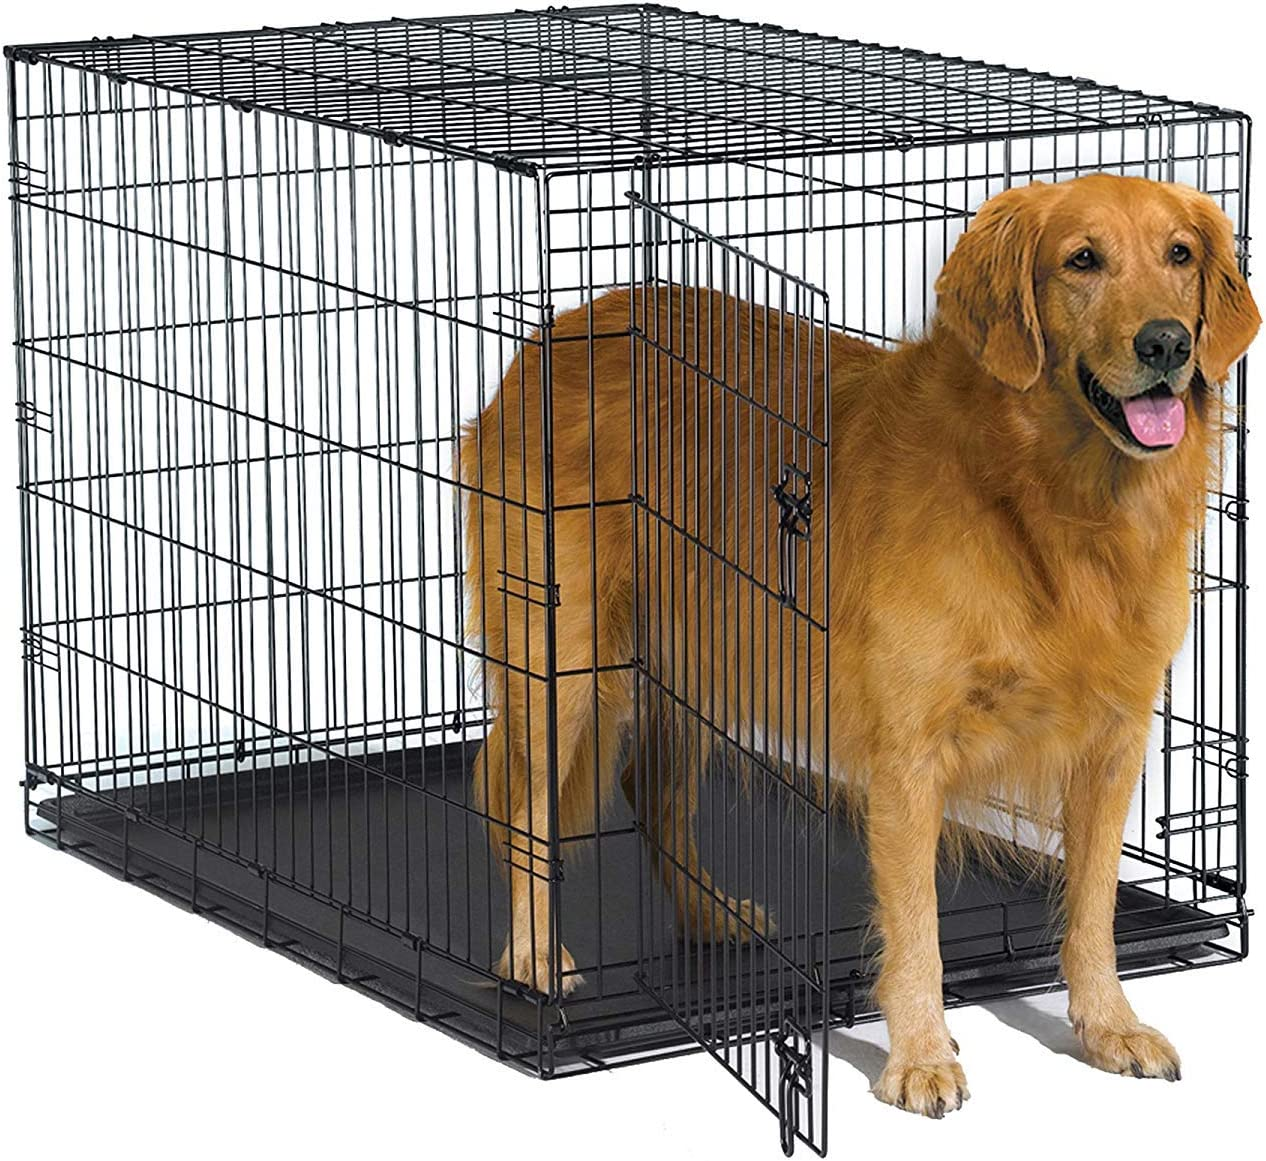 Amazon Com New World 42 Folding Metal Dog Crate Includes Leak Proof Plastic Tray Dog Crate Measures 42l X 30w X 28h Inches Fits Large Dog Breeds Pet Supplies